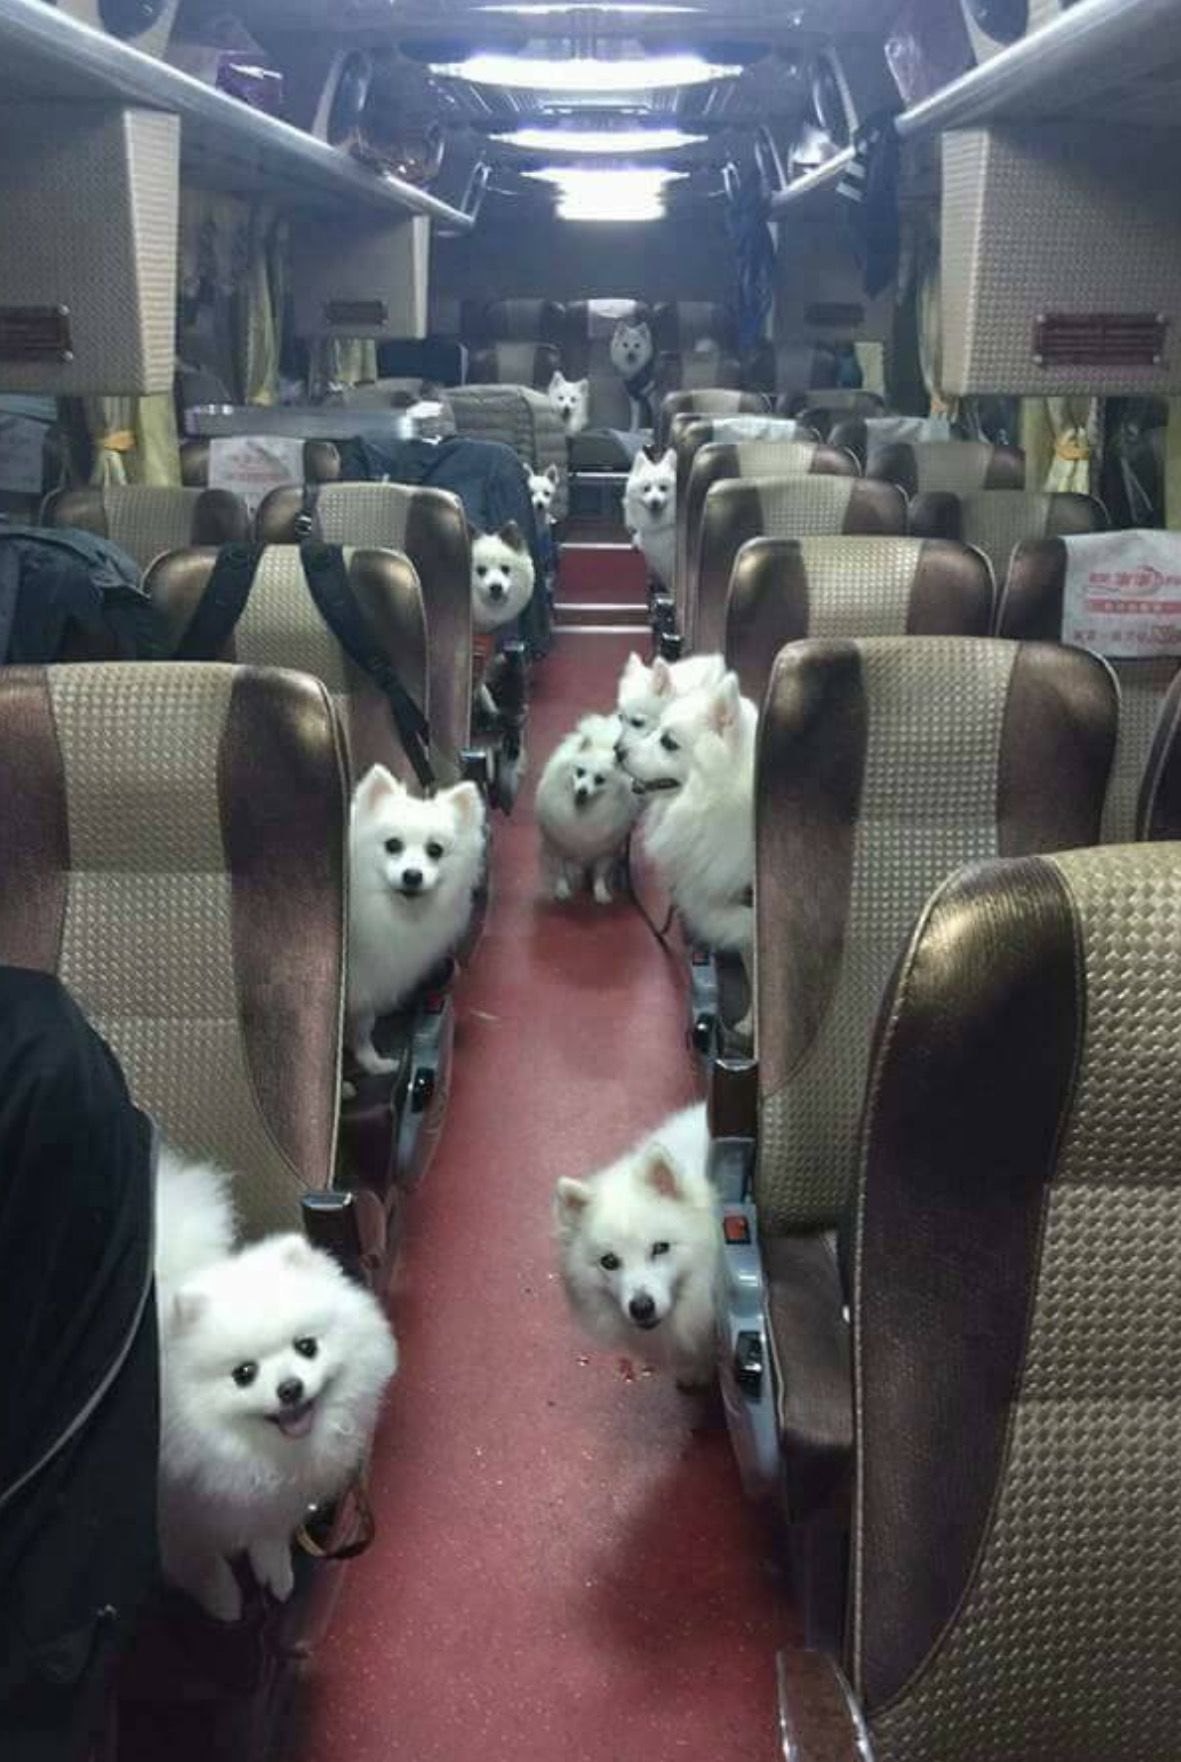 I Ve Found The Bus To Heaven Cute Animals Funny Animal Pictures